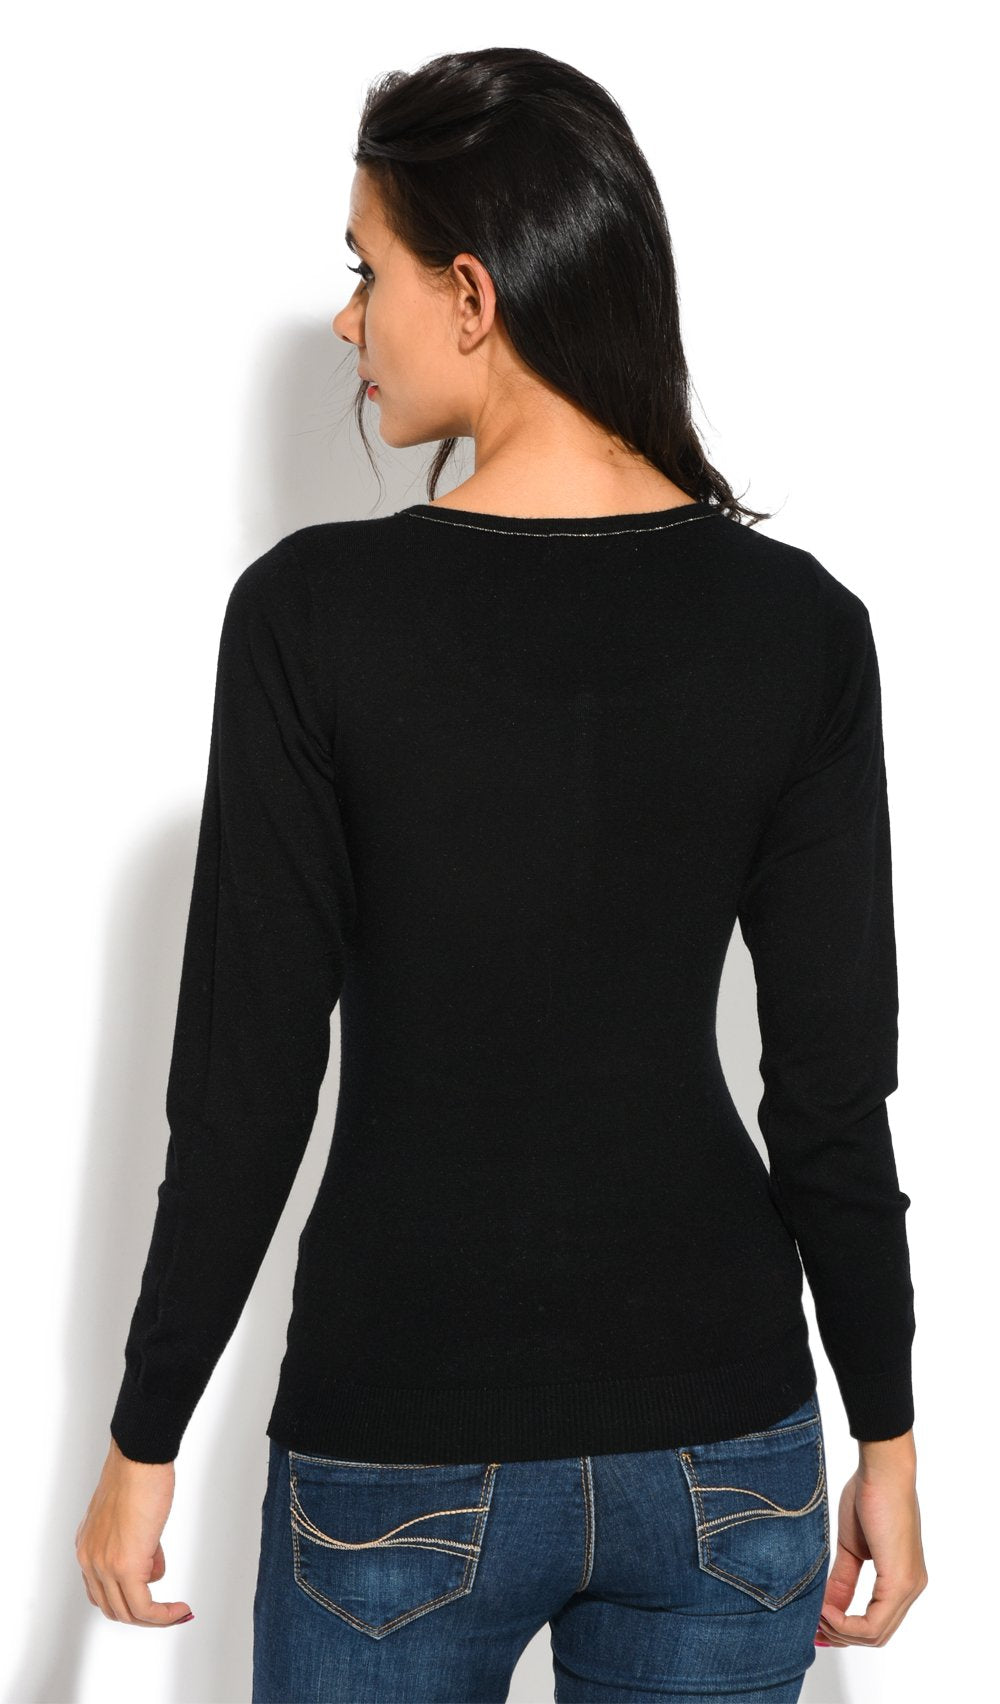 ROUND COLLAR WITH LUREX STITCHING AND BUTTONED SWEATER